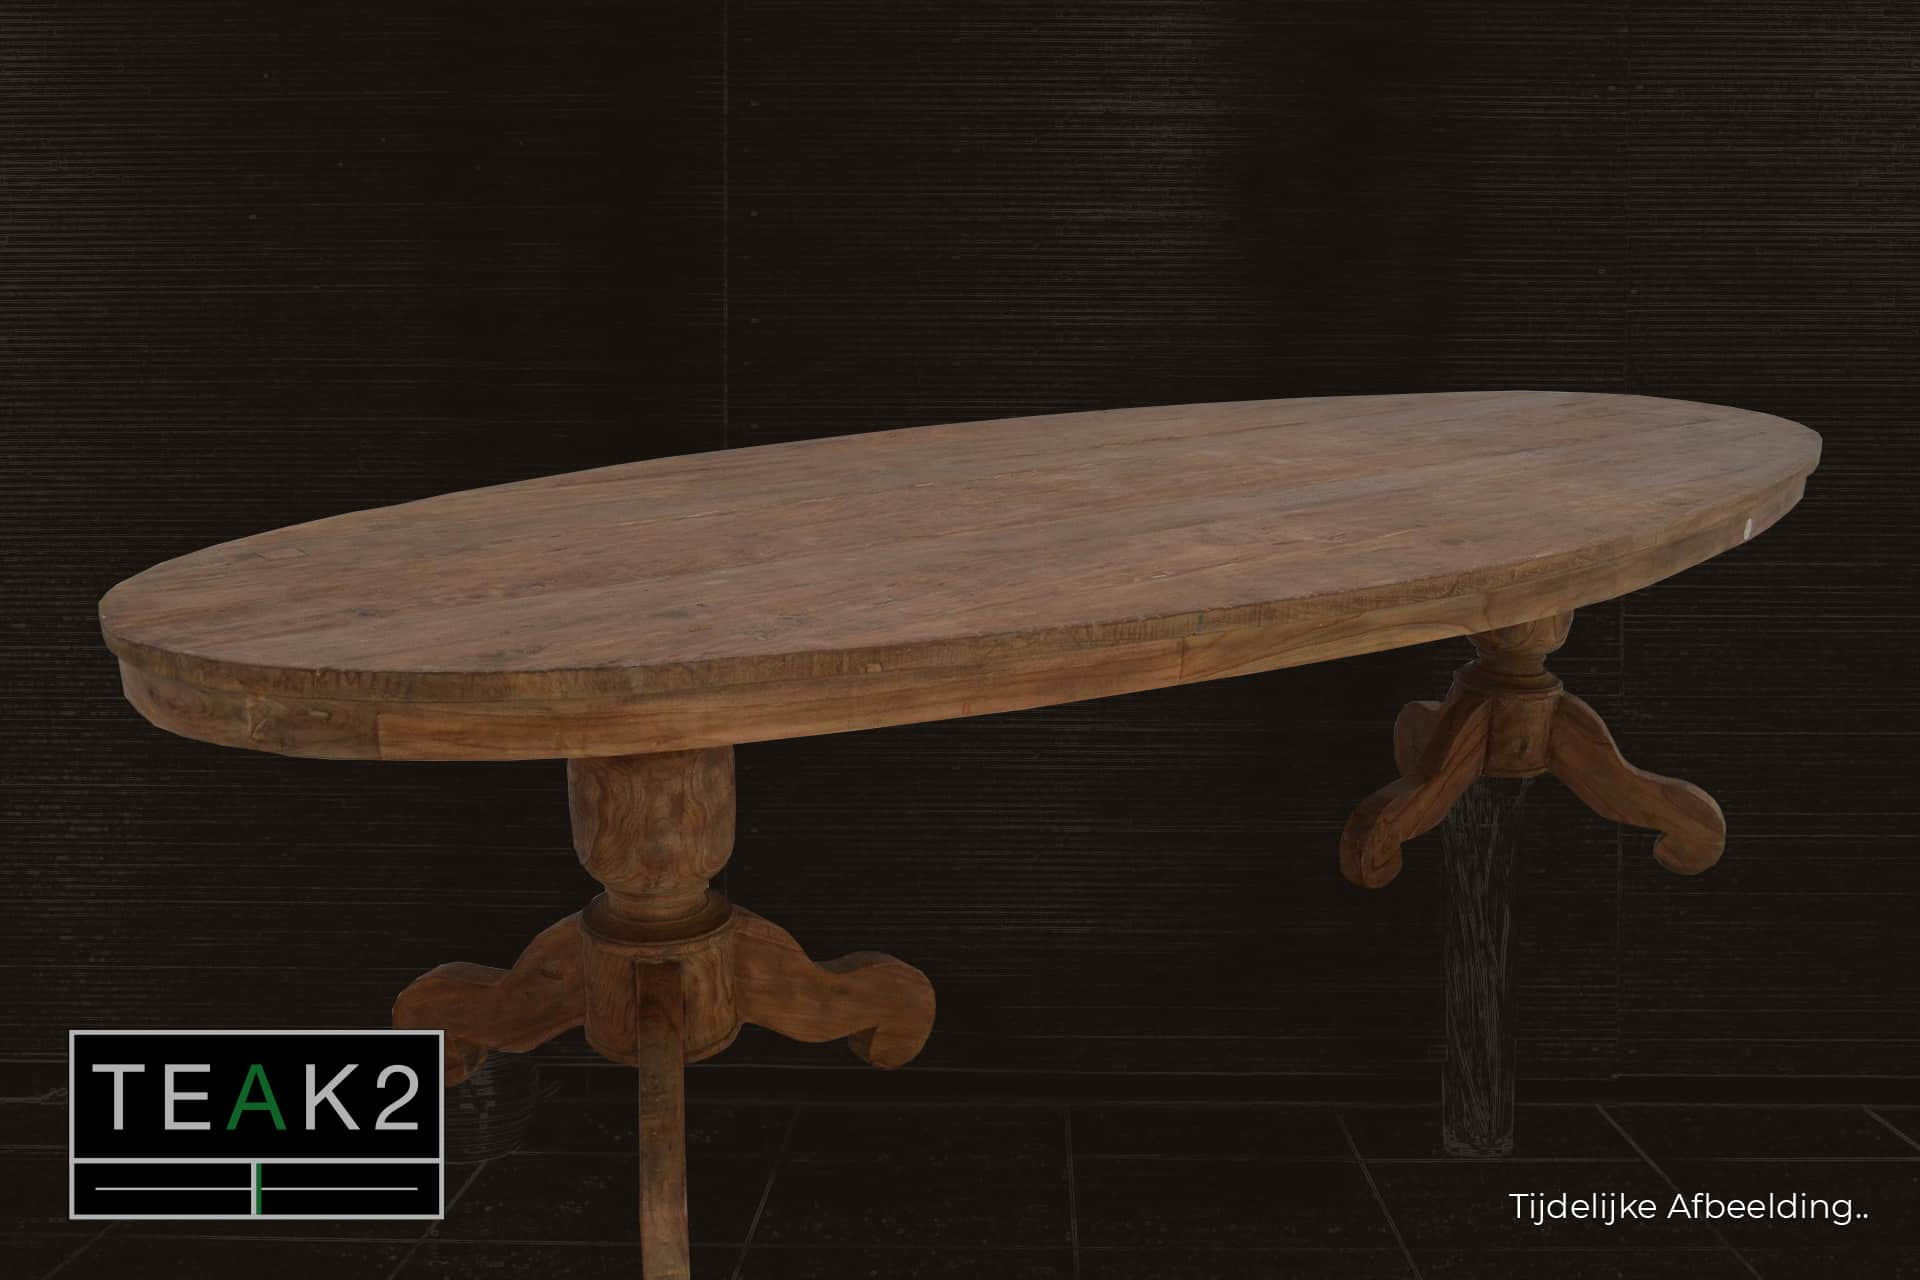 Teak Lugas TO260L Old | rural oval teak table in beautiful old teak from Indonesia. Wooden tables oval or round at furniture store TEAK2.